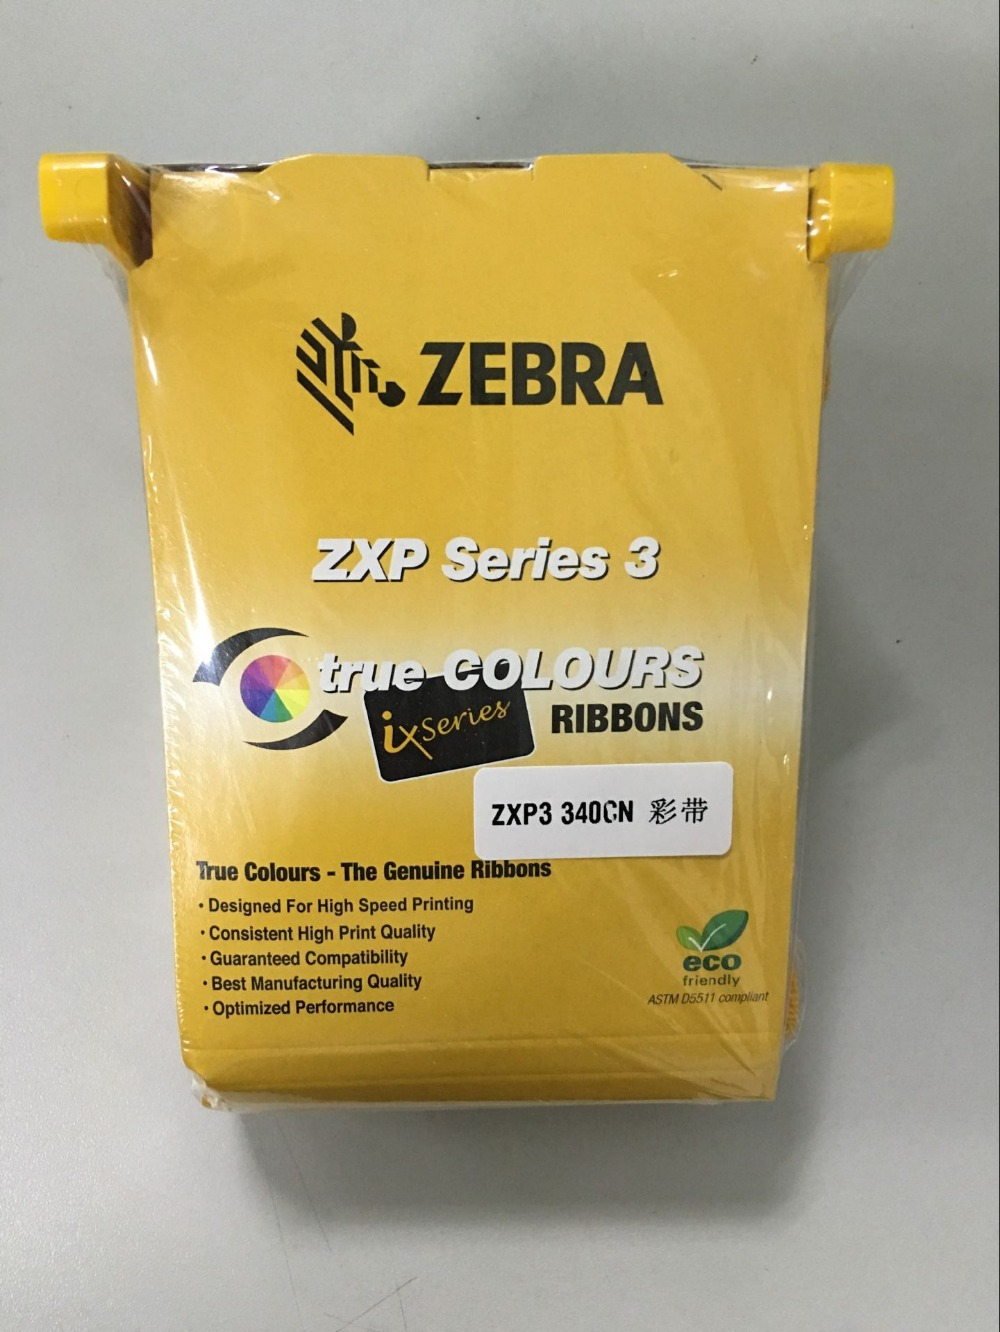 Best color printing quality - Original Color Printer Ribbon Id Card Color Ribbon Used With Zebra Zxp Series 3 Printer